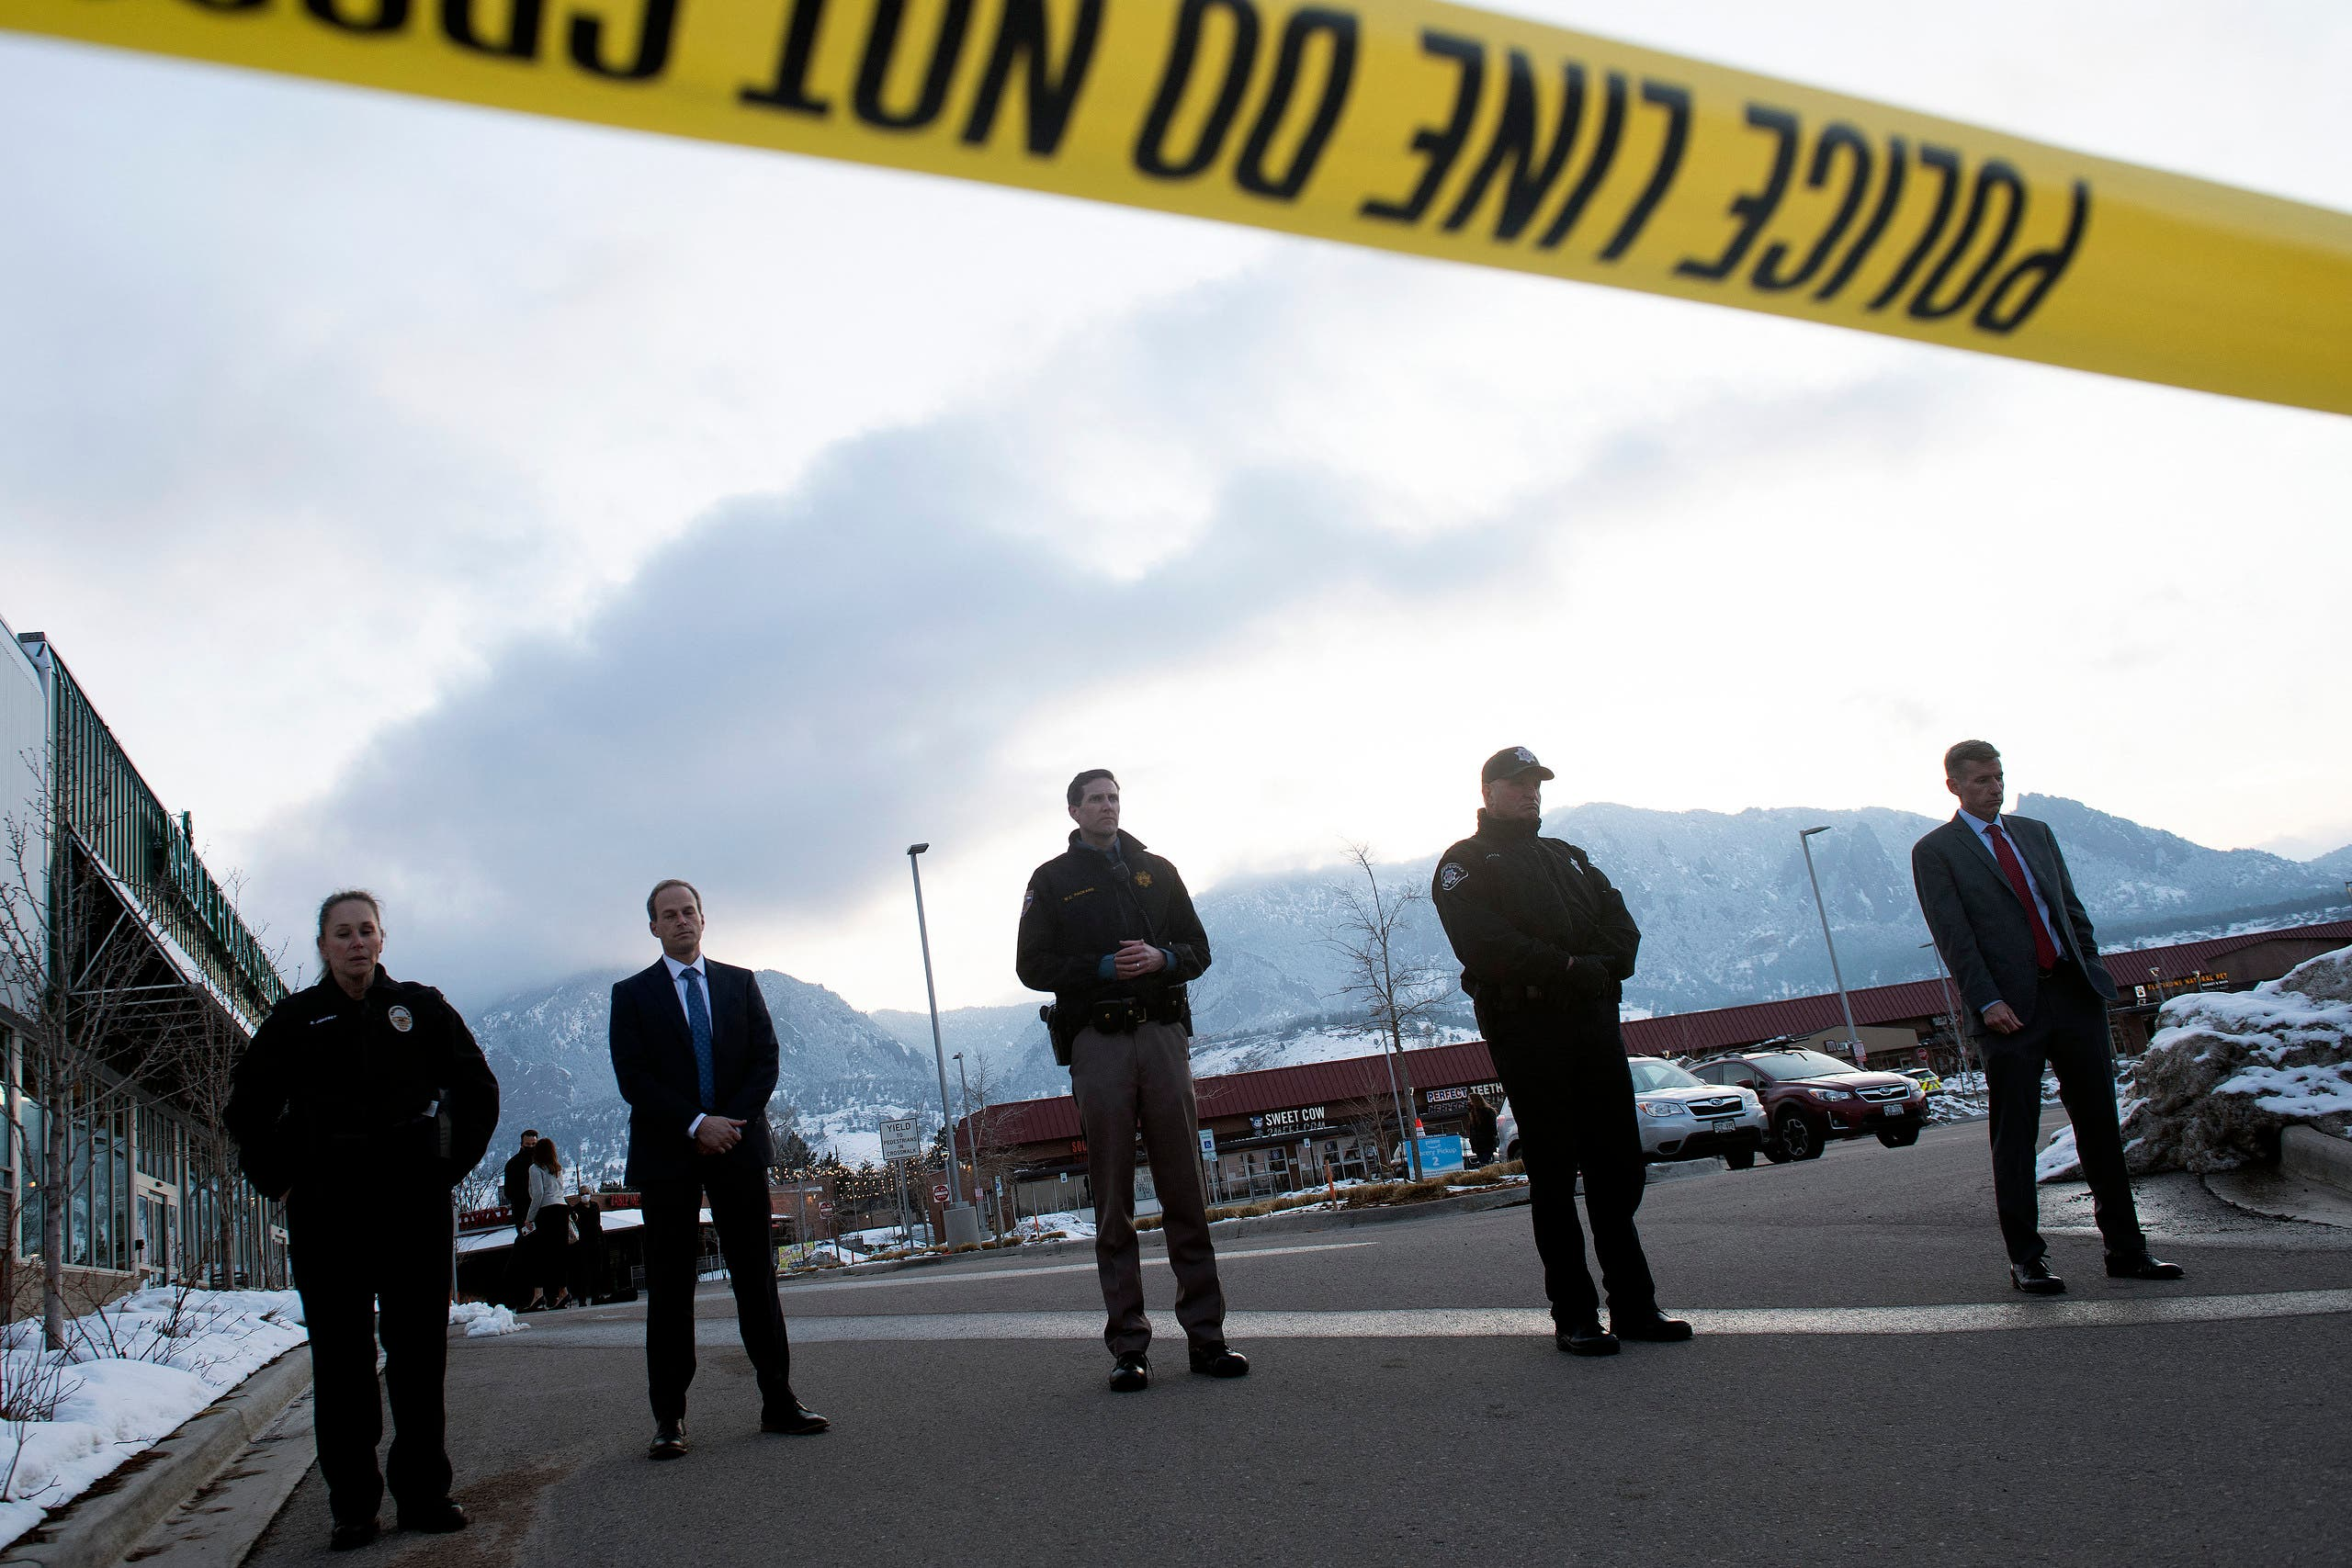 Law enforcement officials wait to address the media after a mass shooting at the King Soopers grocery store in Boulder, Colorado on March 22, 2021. (File photo: AFP)